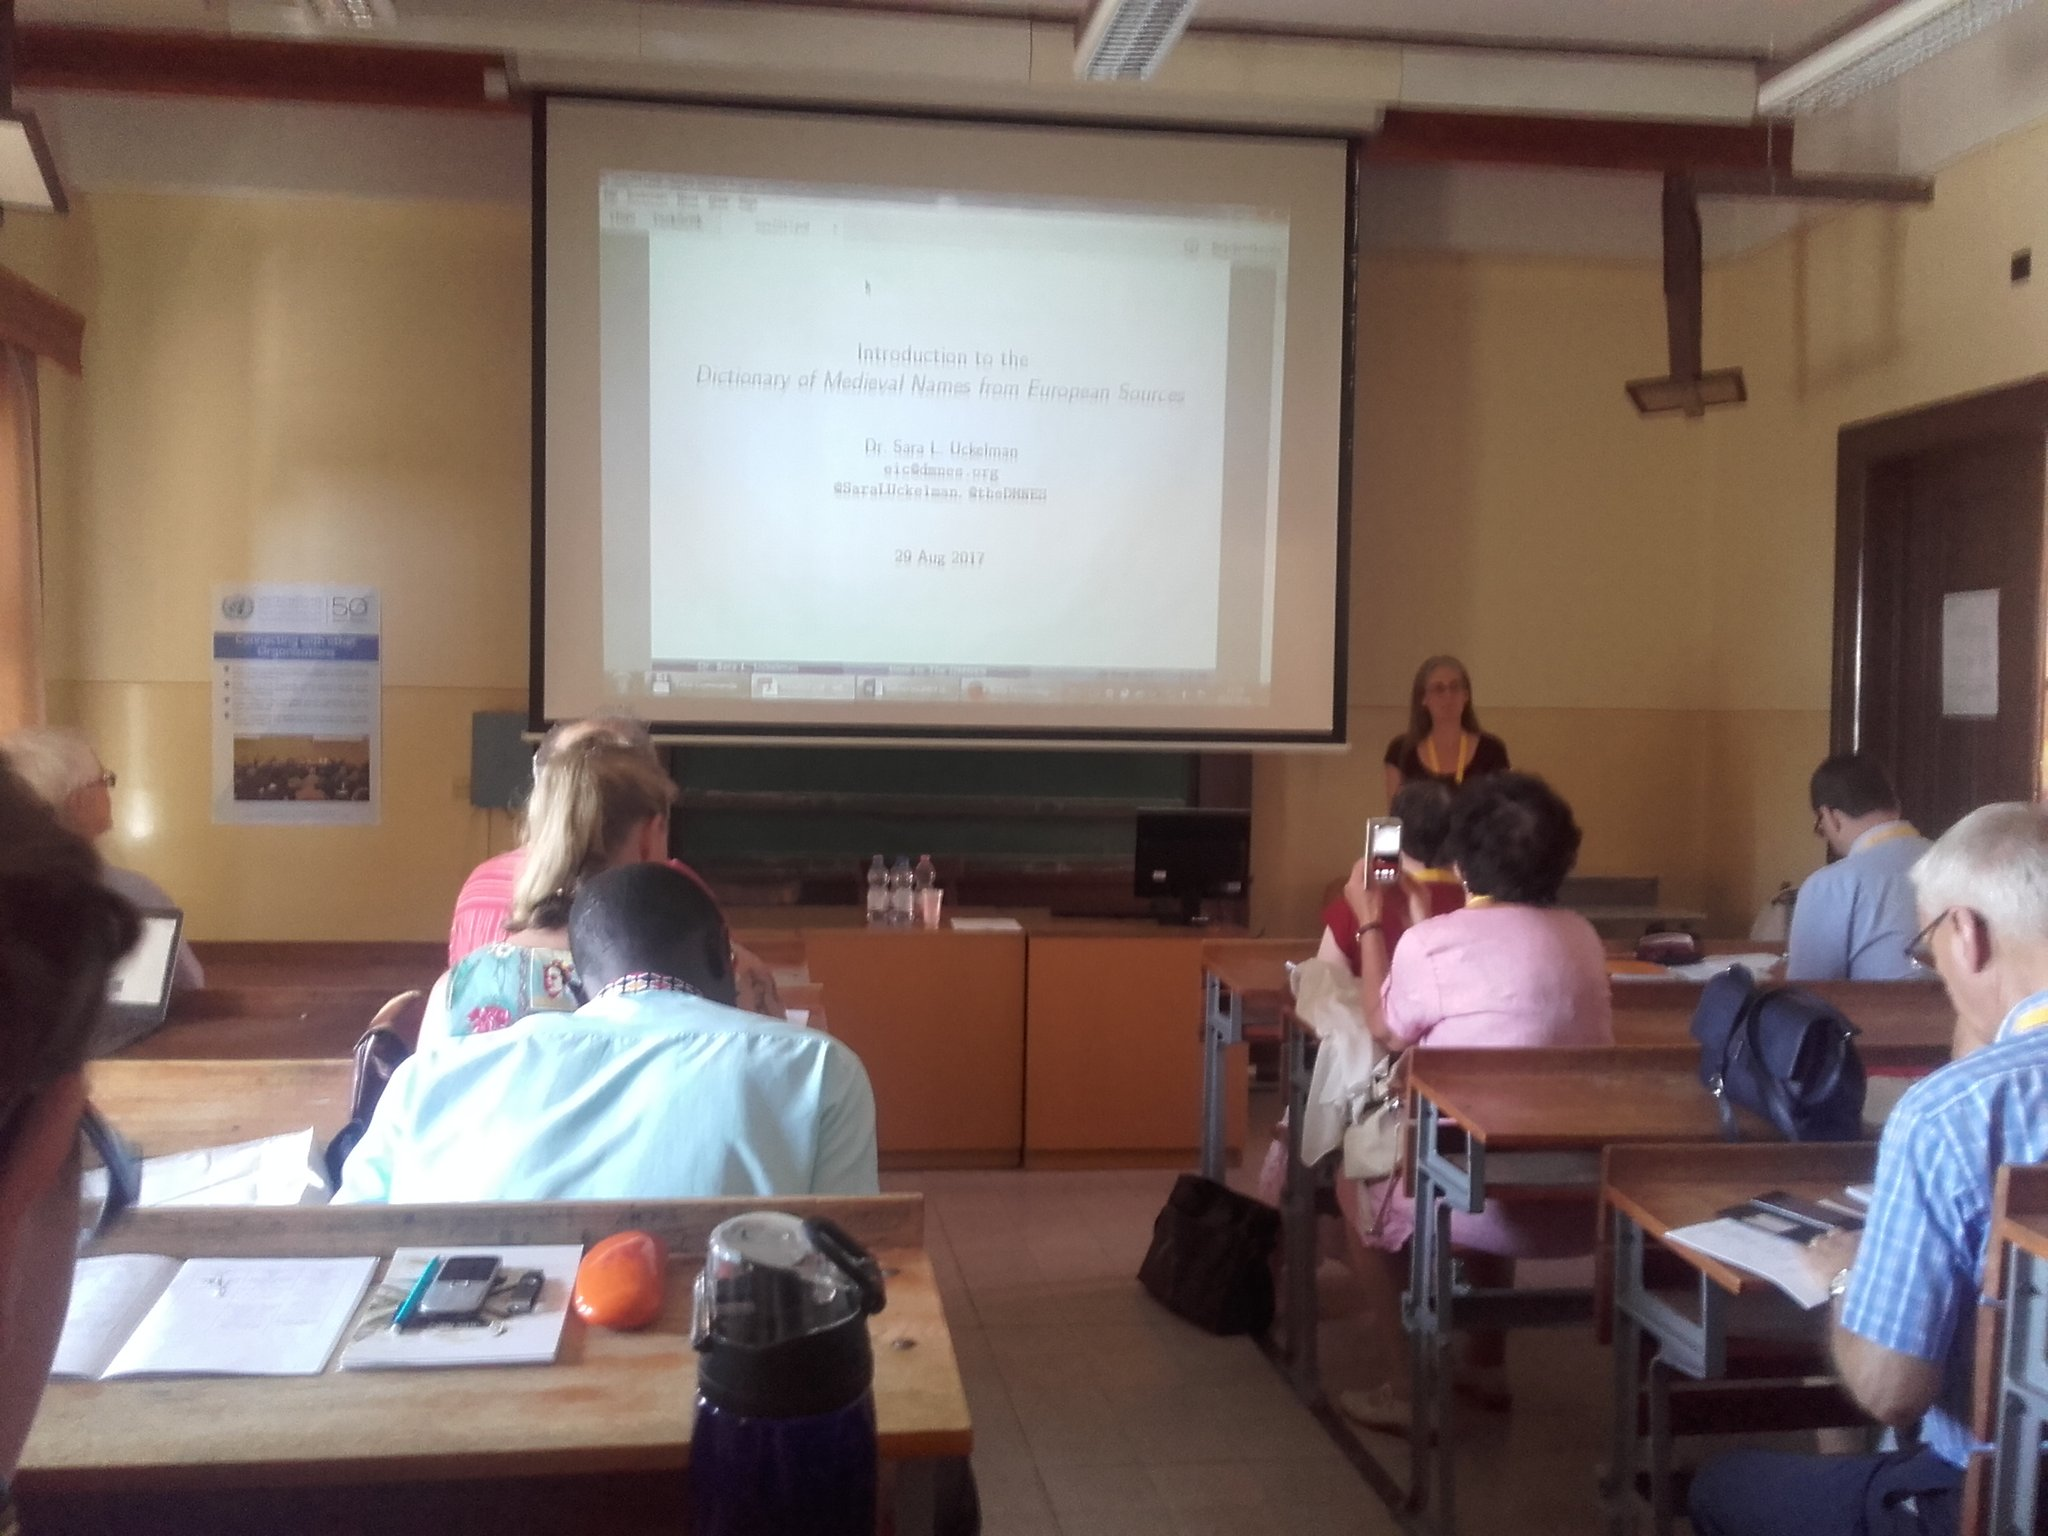 The mother of DMNES Sara Uckelman presents dictionary of medieaval names! #icos2017 #dmnes #onomastics https://t.co/ZX3NZwxHQw